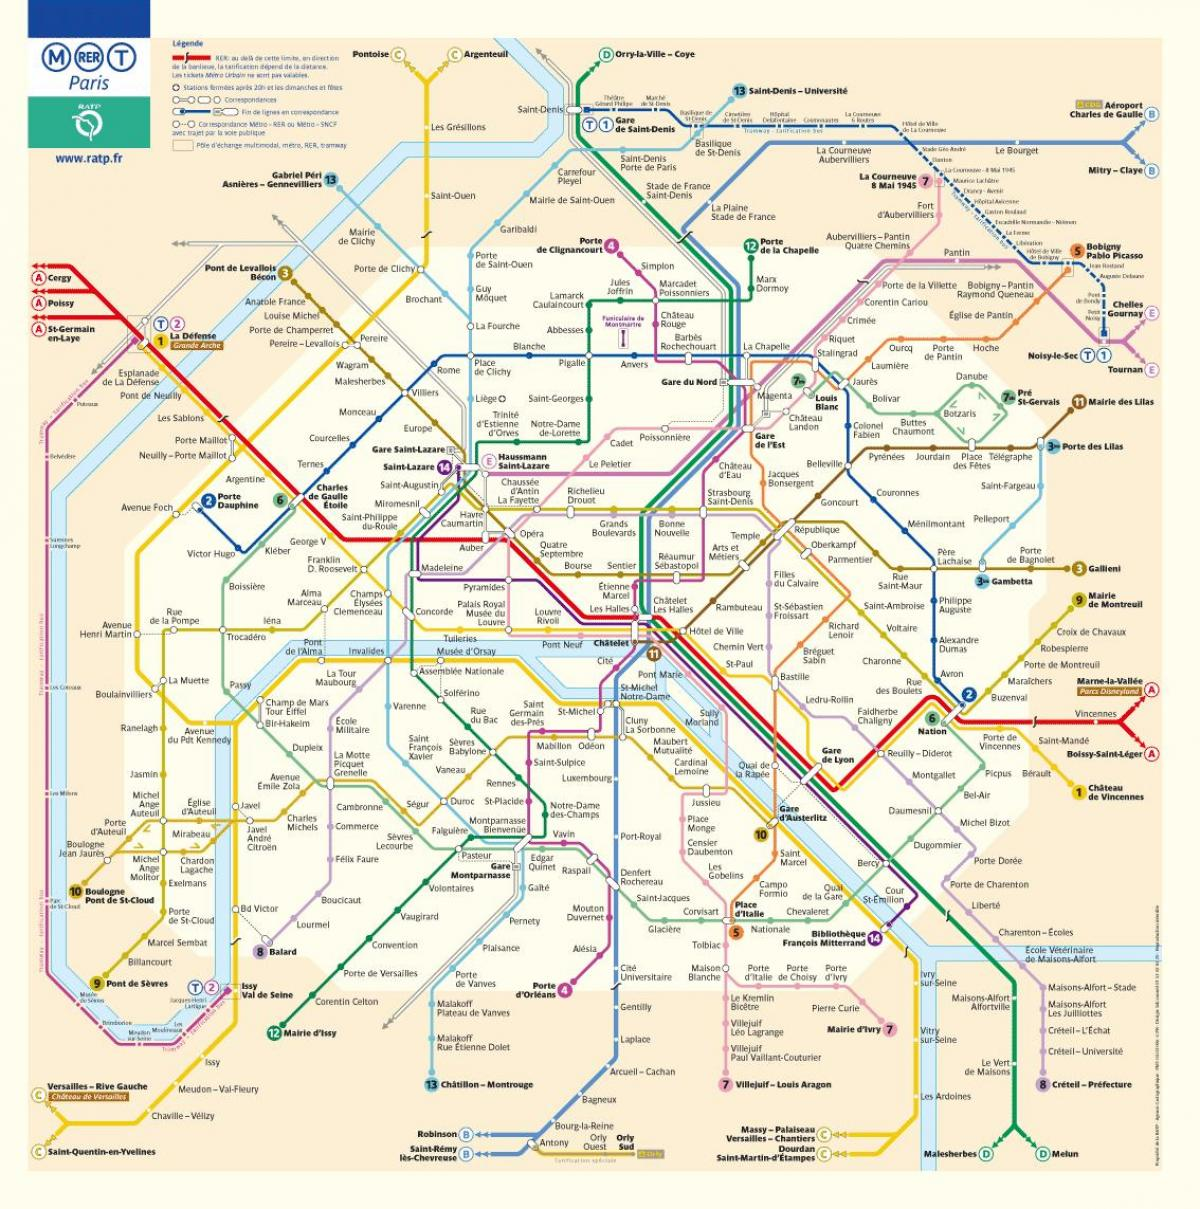 metro map of Paris France in english